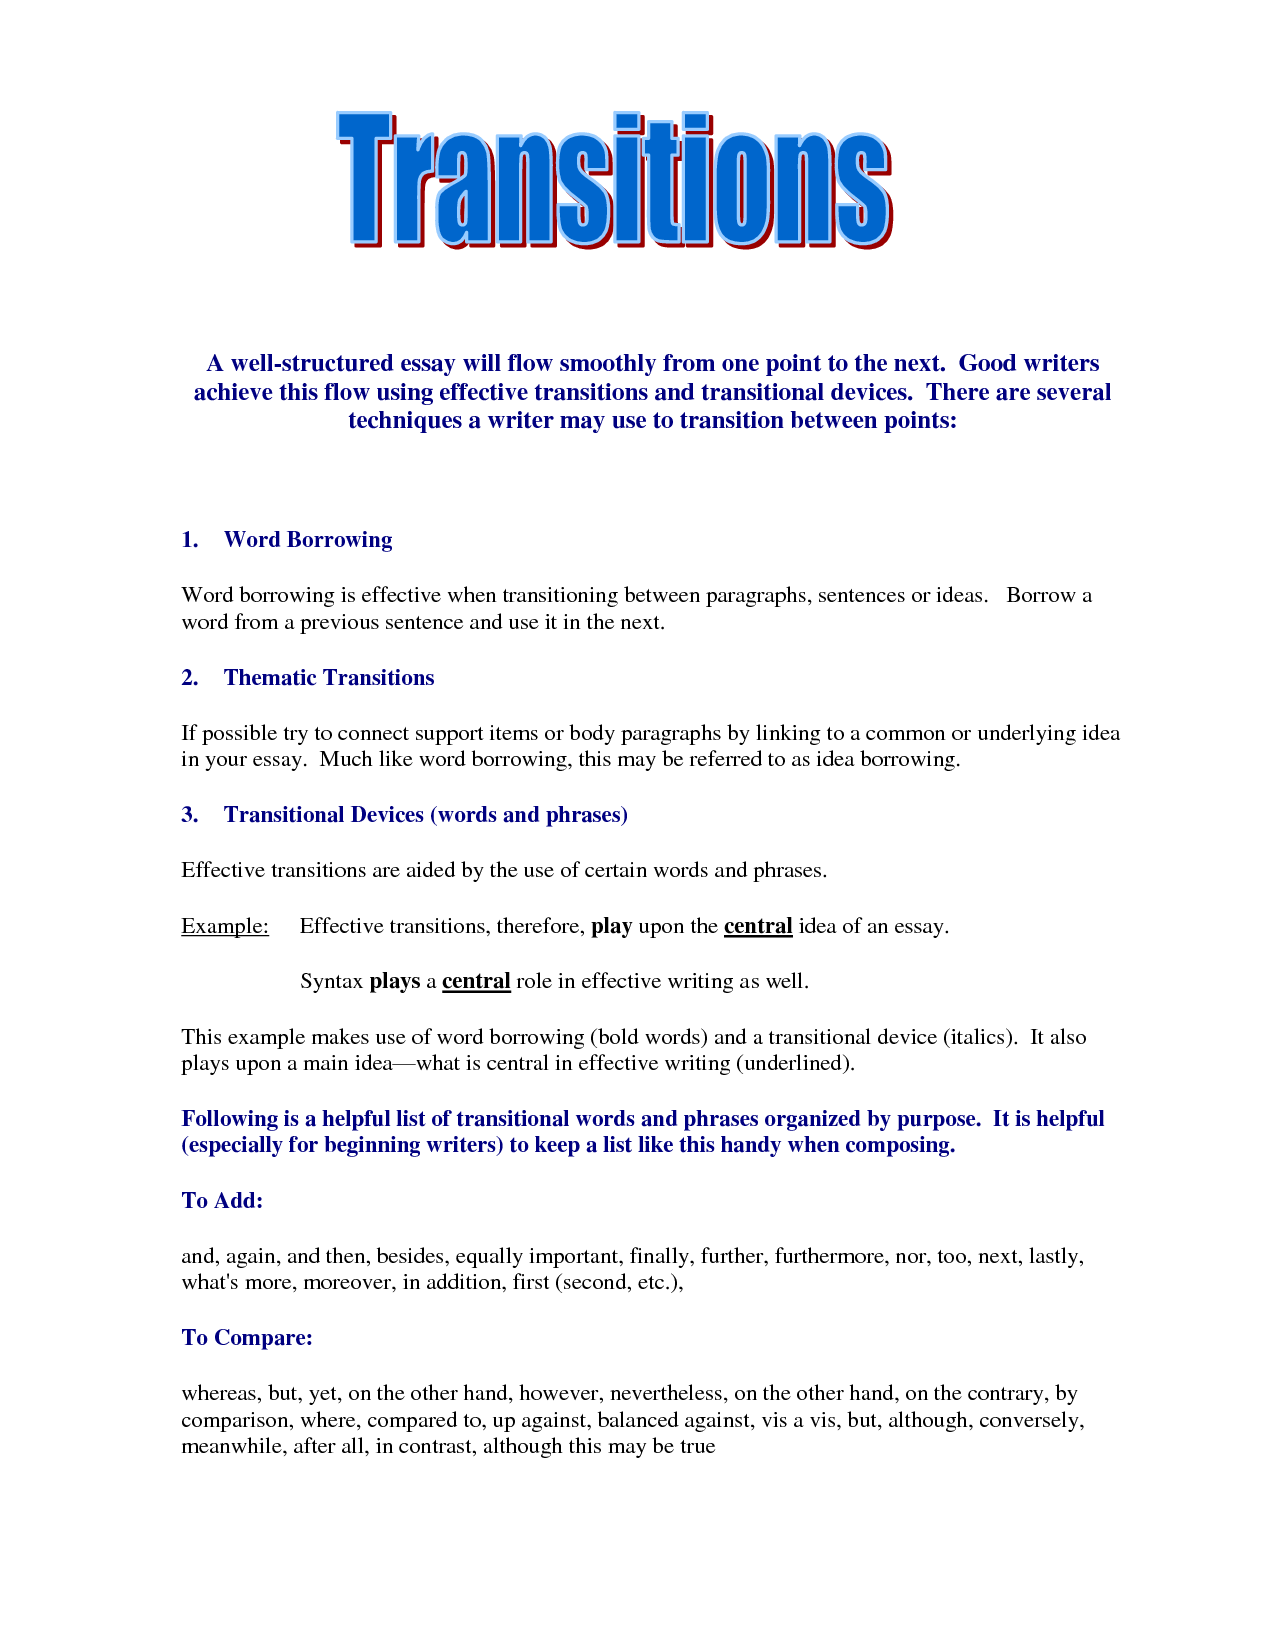 023 Good Essay Transitions Example Awesome Collection Of Transition Sentences Examples For Essays Your Stupendous Conclusion Paper Full